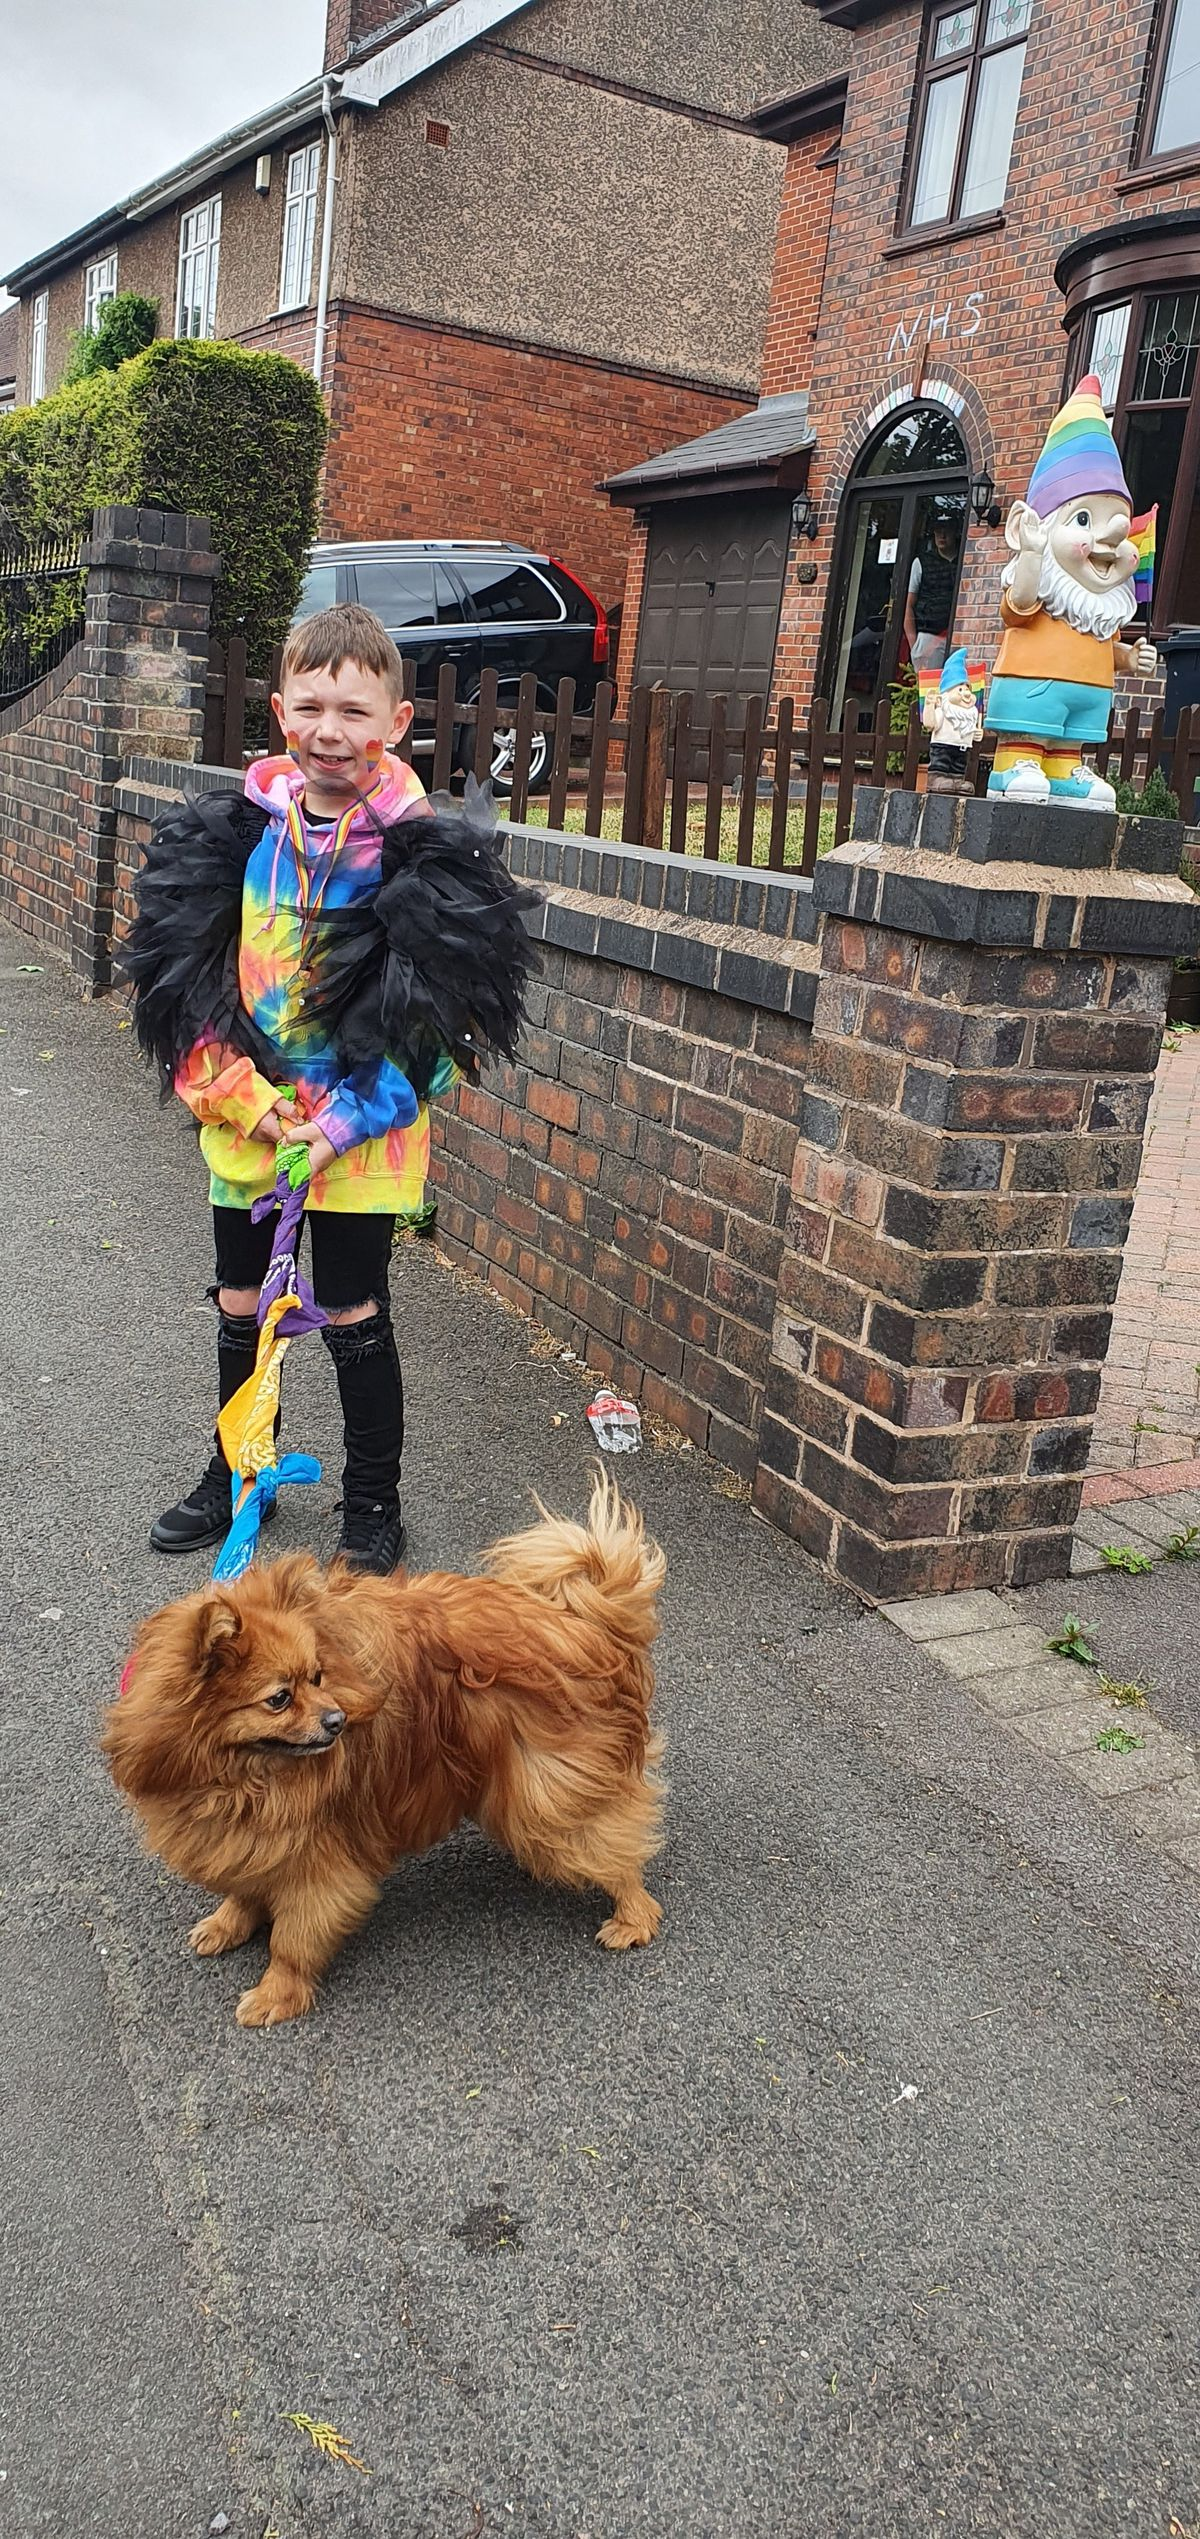 Lee Walker, Ethan Hill, Fern and Jme Eglington have hosted their own LGBTQ Pride parade in their Coseley street